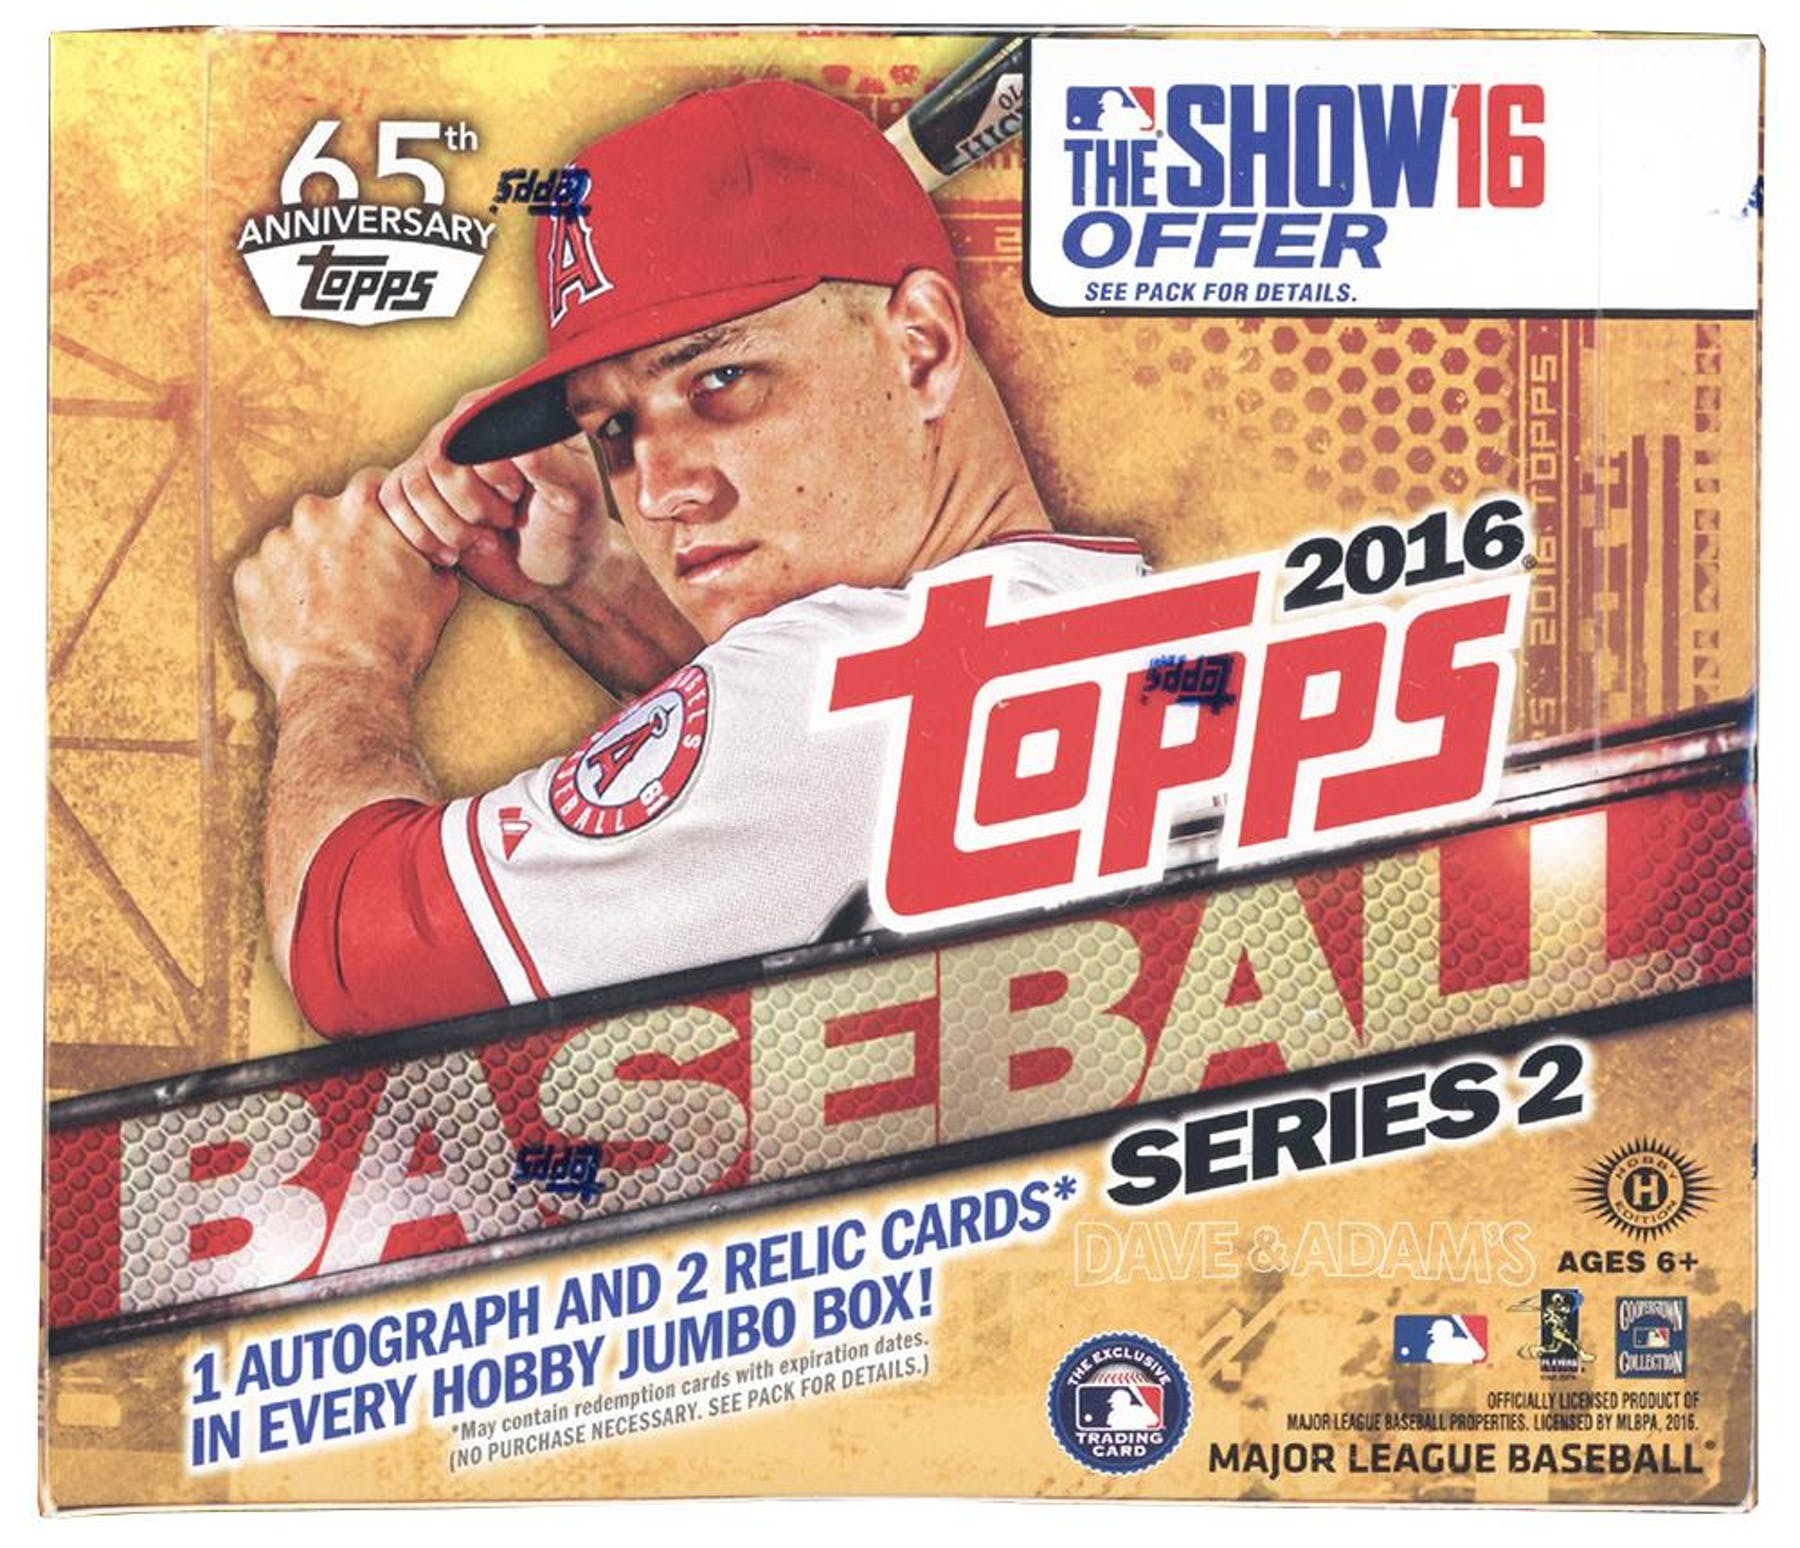 cfe59acc33 2016 Topps Series 2 Baseball Hobby Jumbo Box | DA Card World